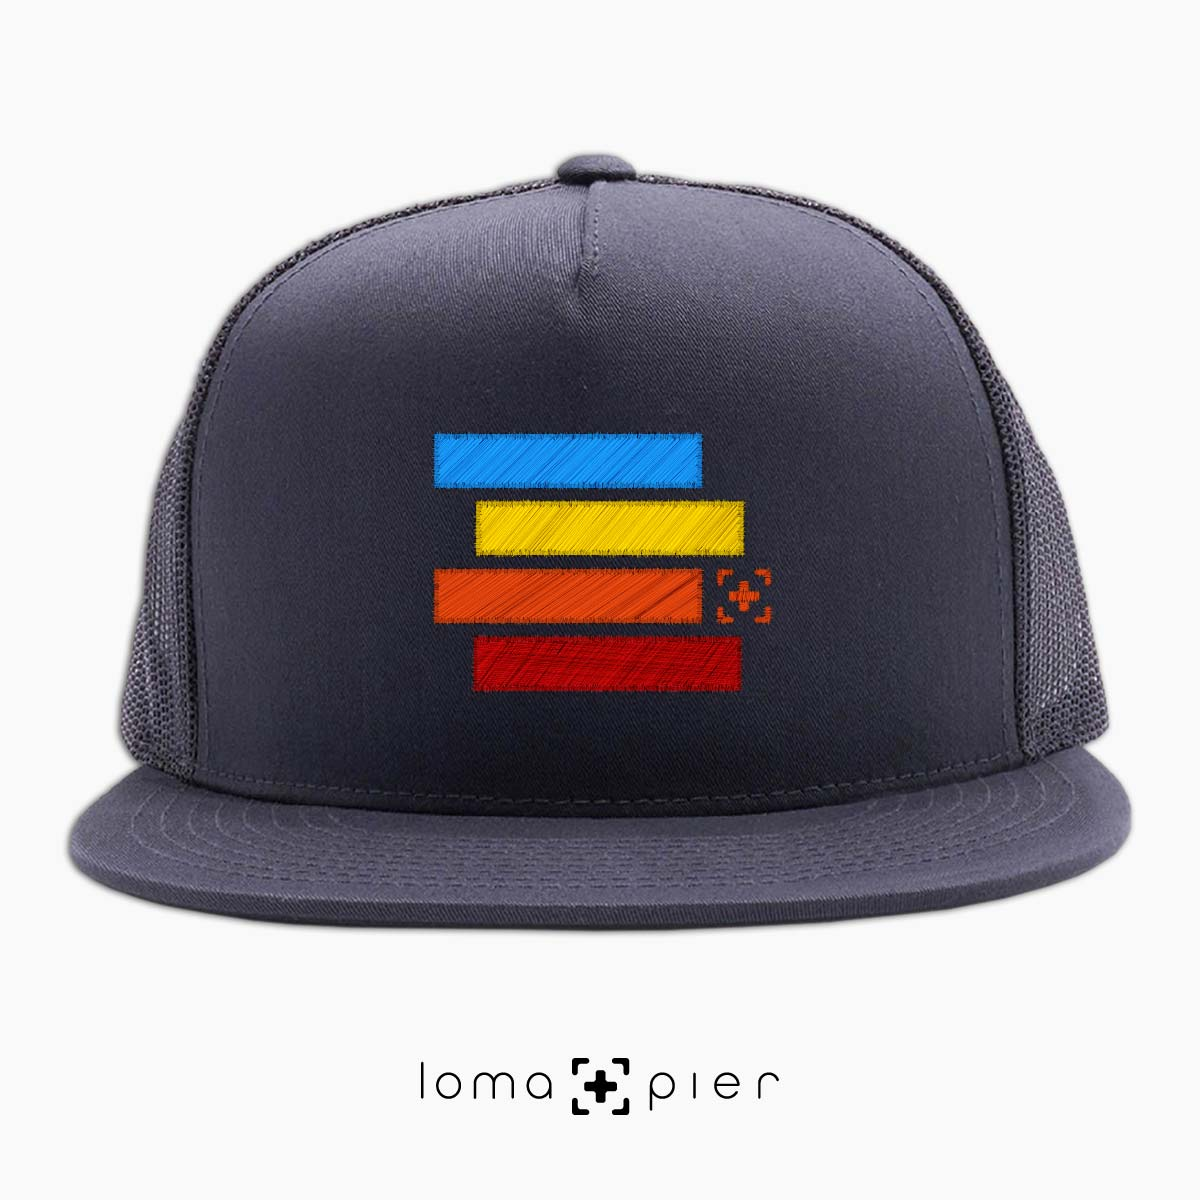 rainbow stack hermosa beach netback hat in charcoal by lomapier hat store